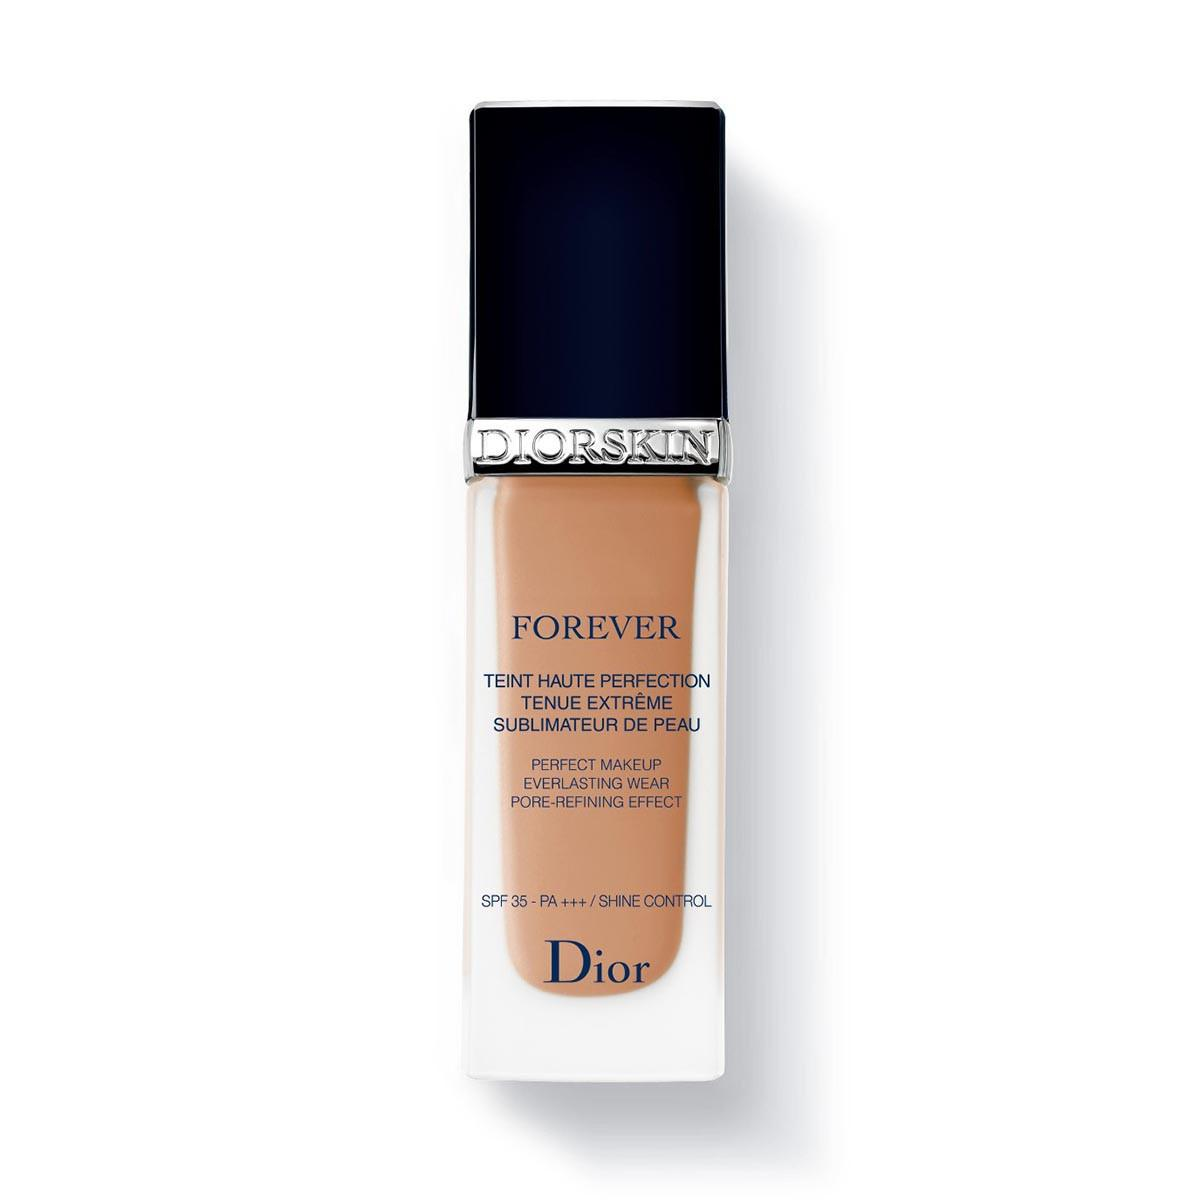 Christian dior fragrances Skin Forever Teint Haute Perfection Spf35 040 Miel